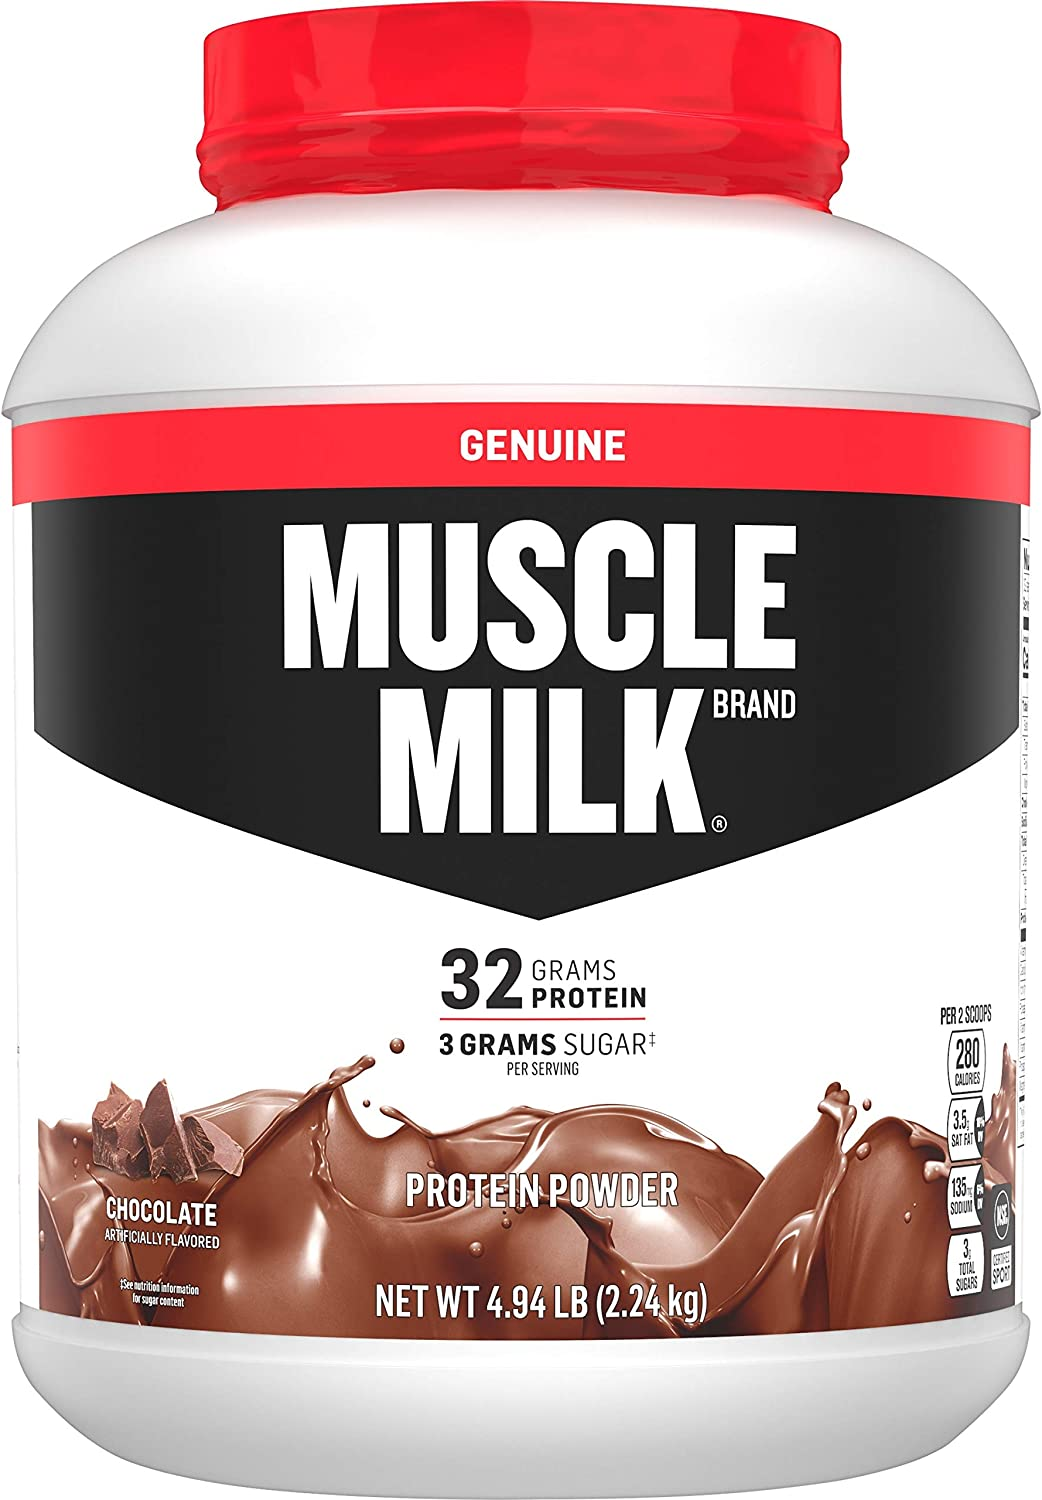 Amazon.com: Muscle Milk Genuine Protein Powder, Chocolate, 32g Protein,  4.94 Pound, 32 Servings: Health & Personal Care